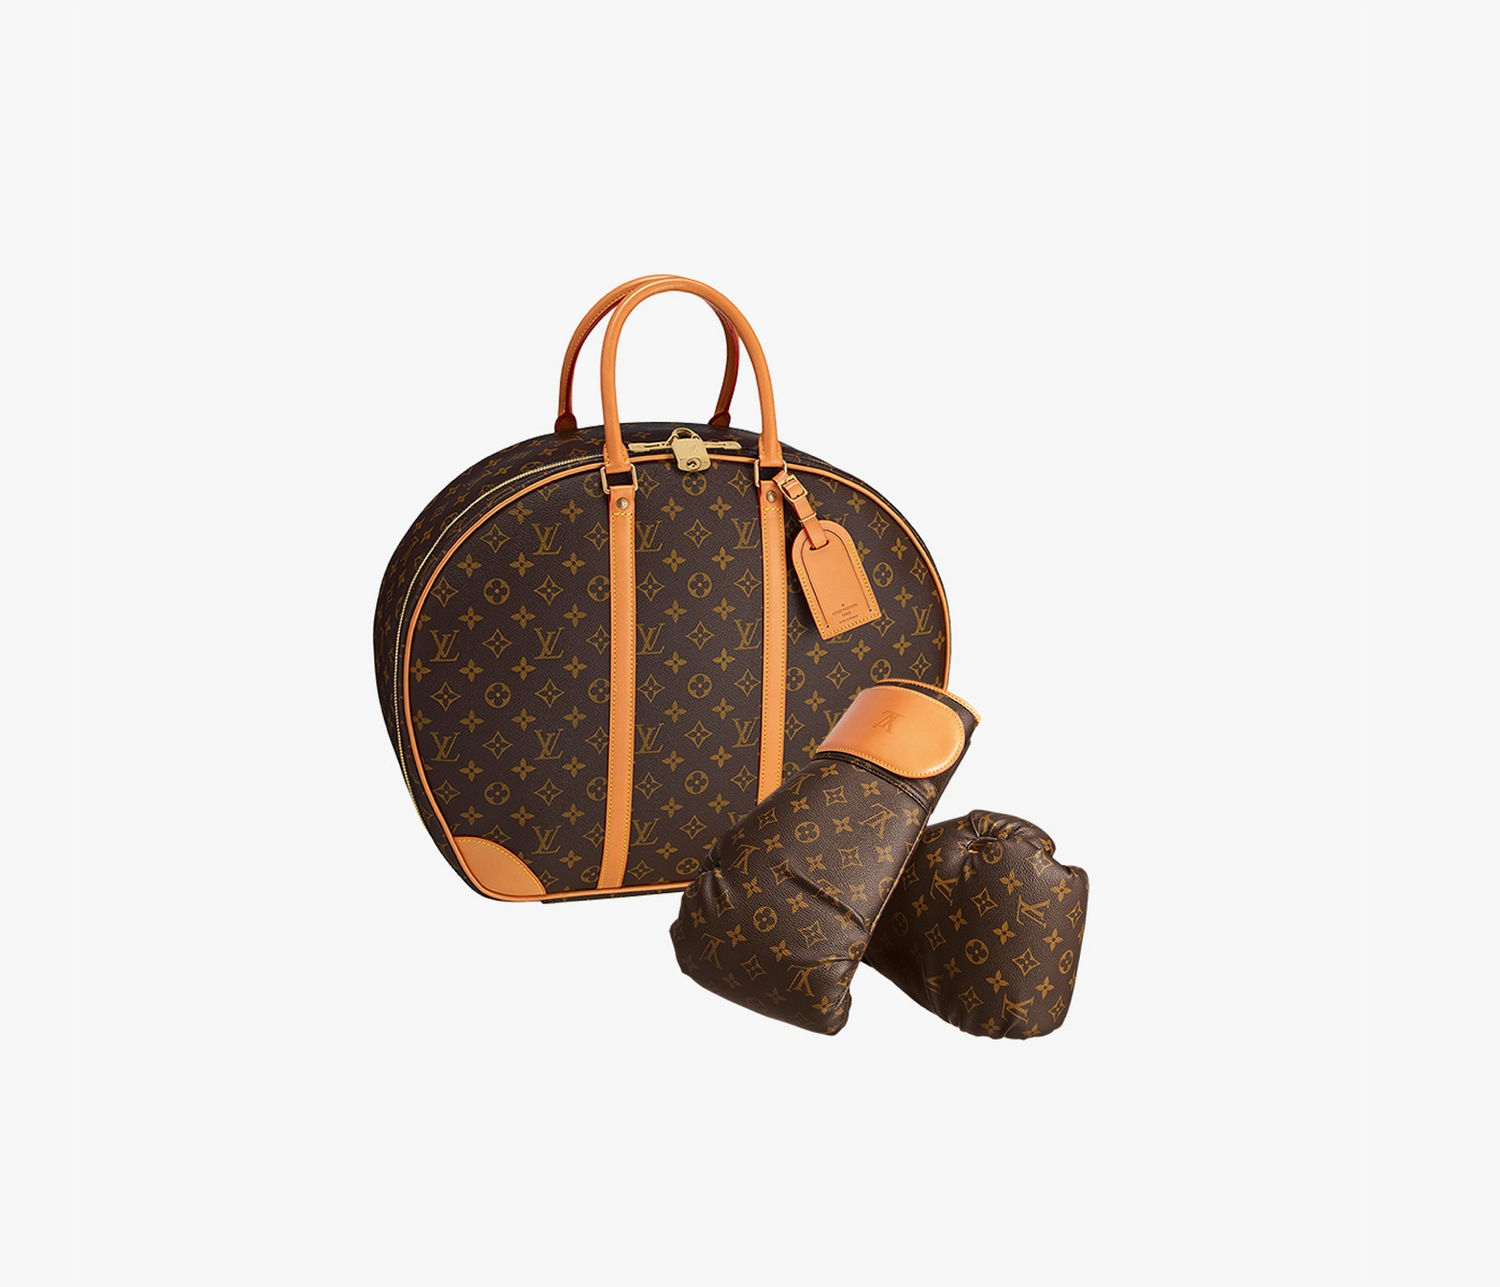 Louis Vuitton Punching Suitcase by Karl Lagerfeld